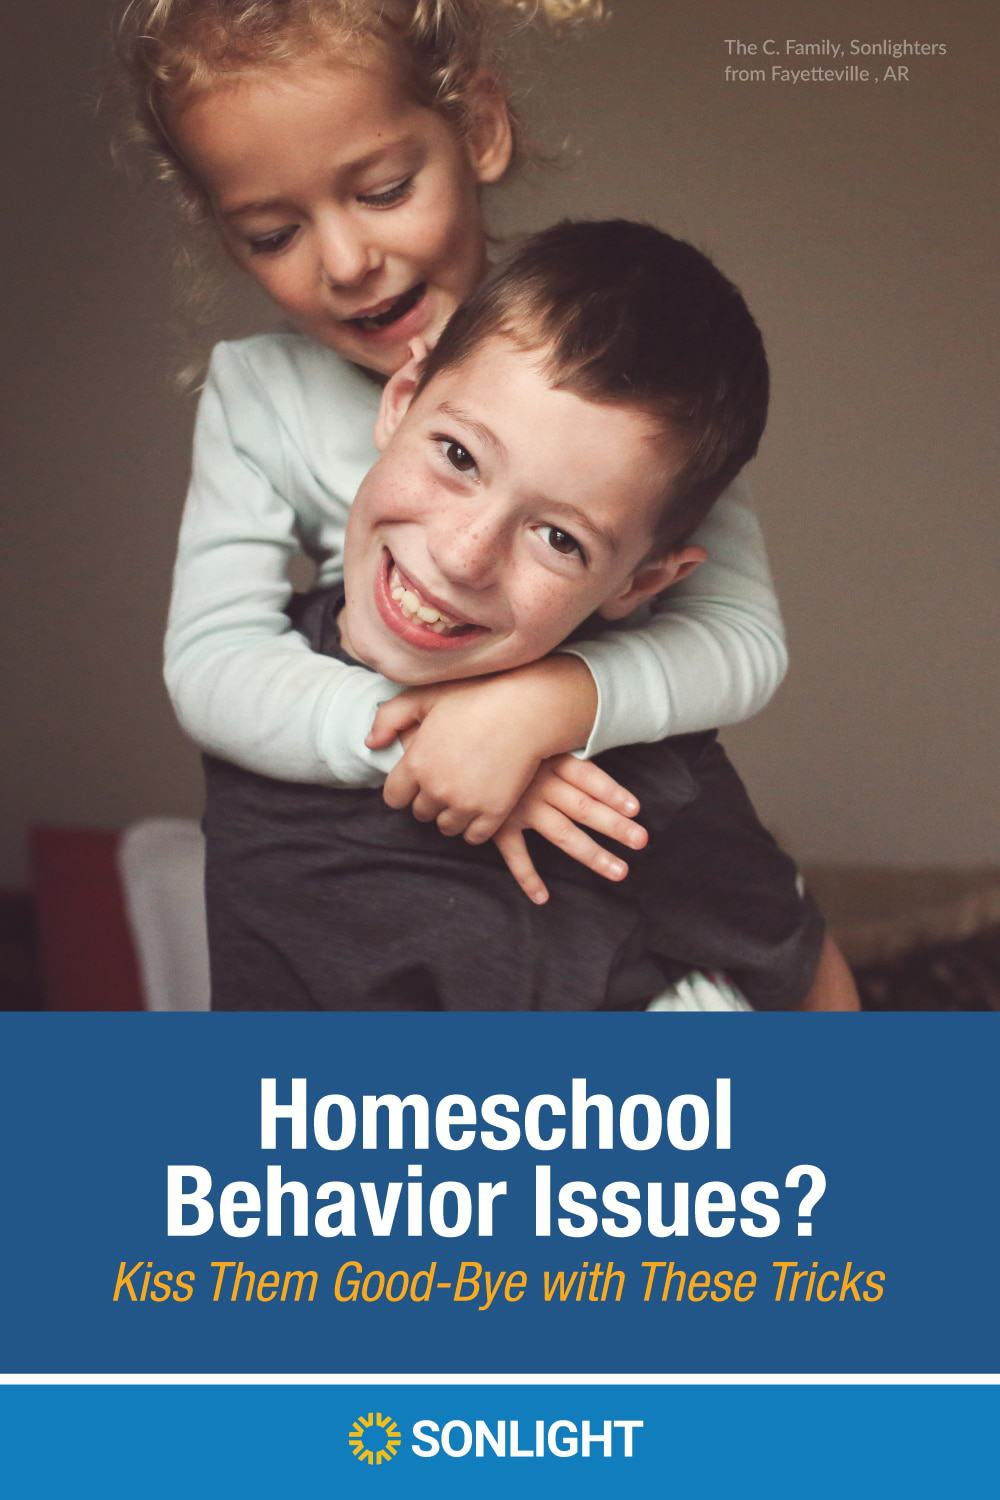 Homeschool Behavior Issues? Kiss Them Good-Bye with These Tricks